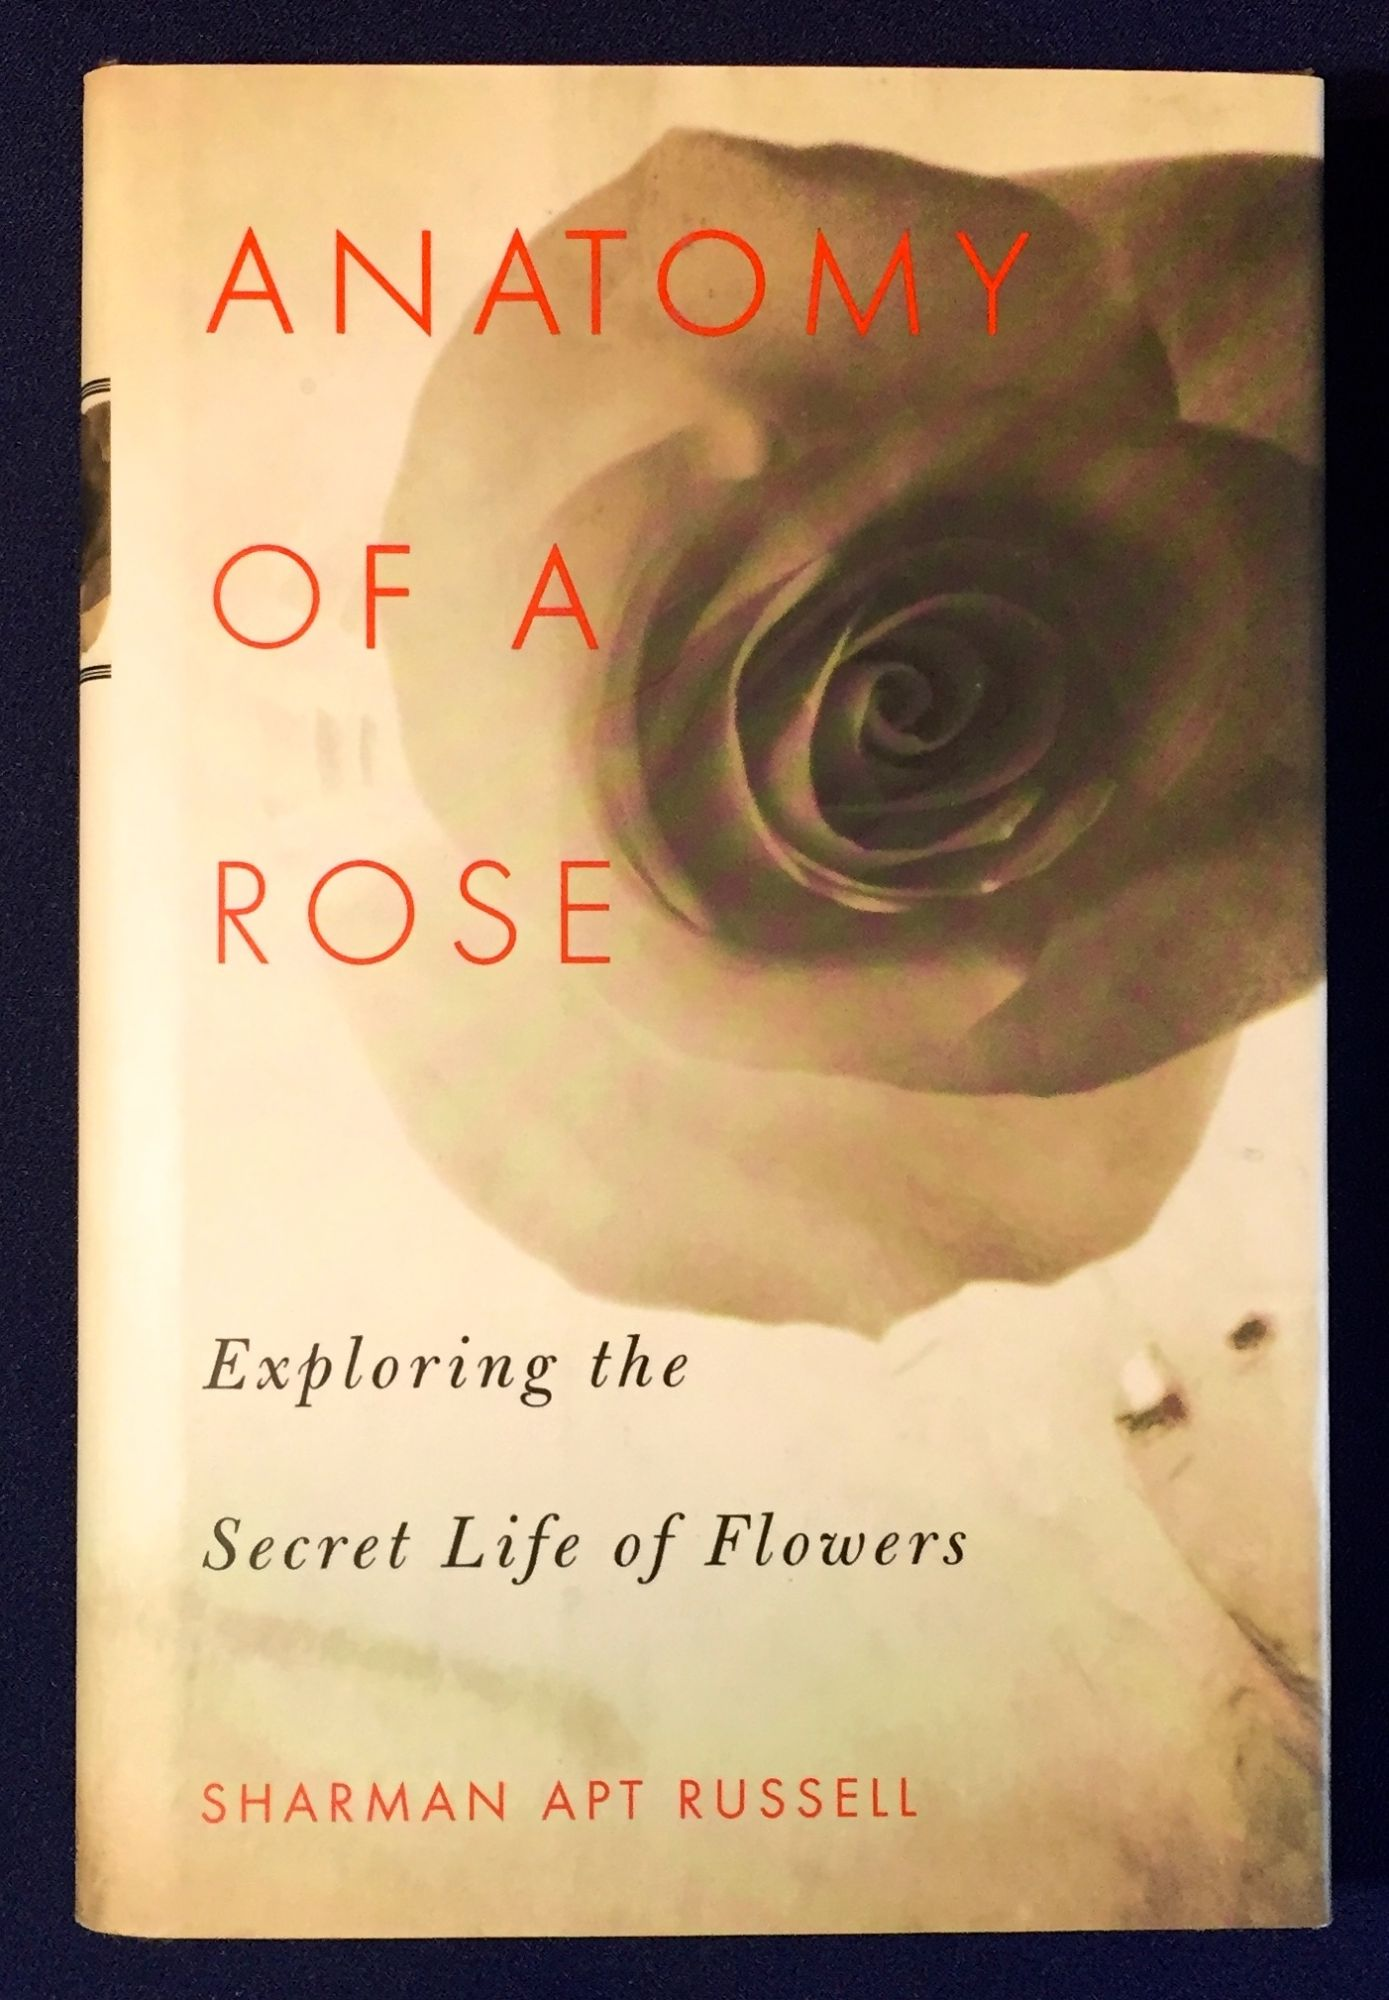 Anatomy Of A Rose Exploring The Secret Life Of Flowers Illustrations Libby Hubbell By Sharman Apt Russell On Borg Antiquarian